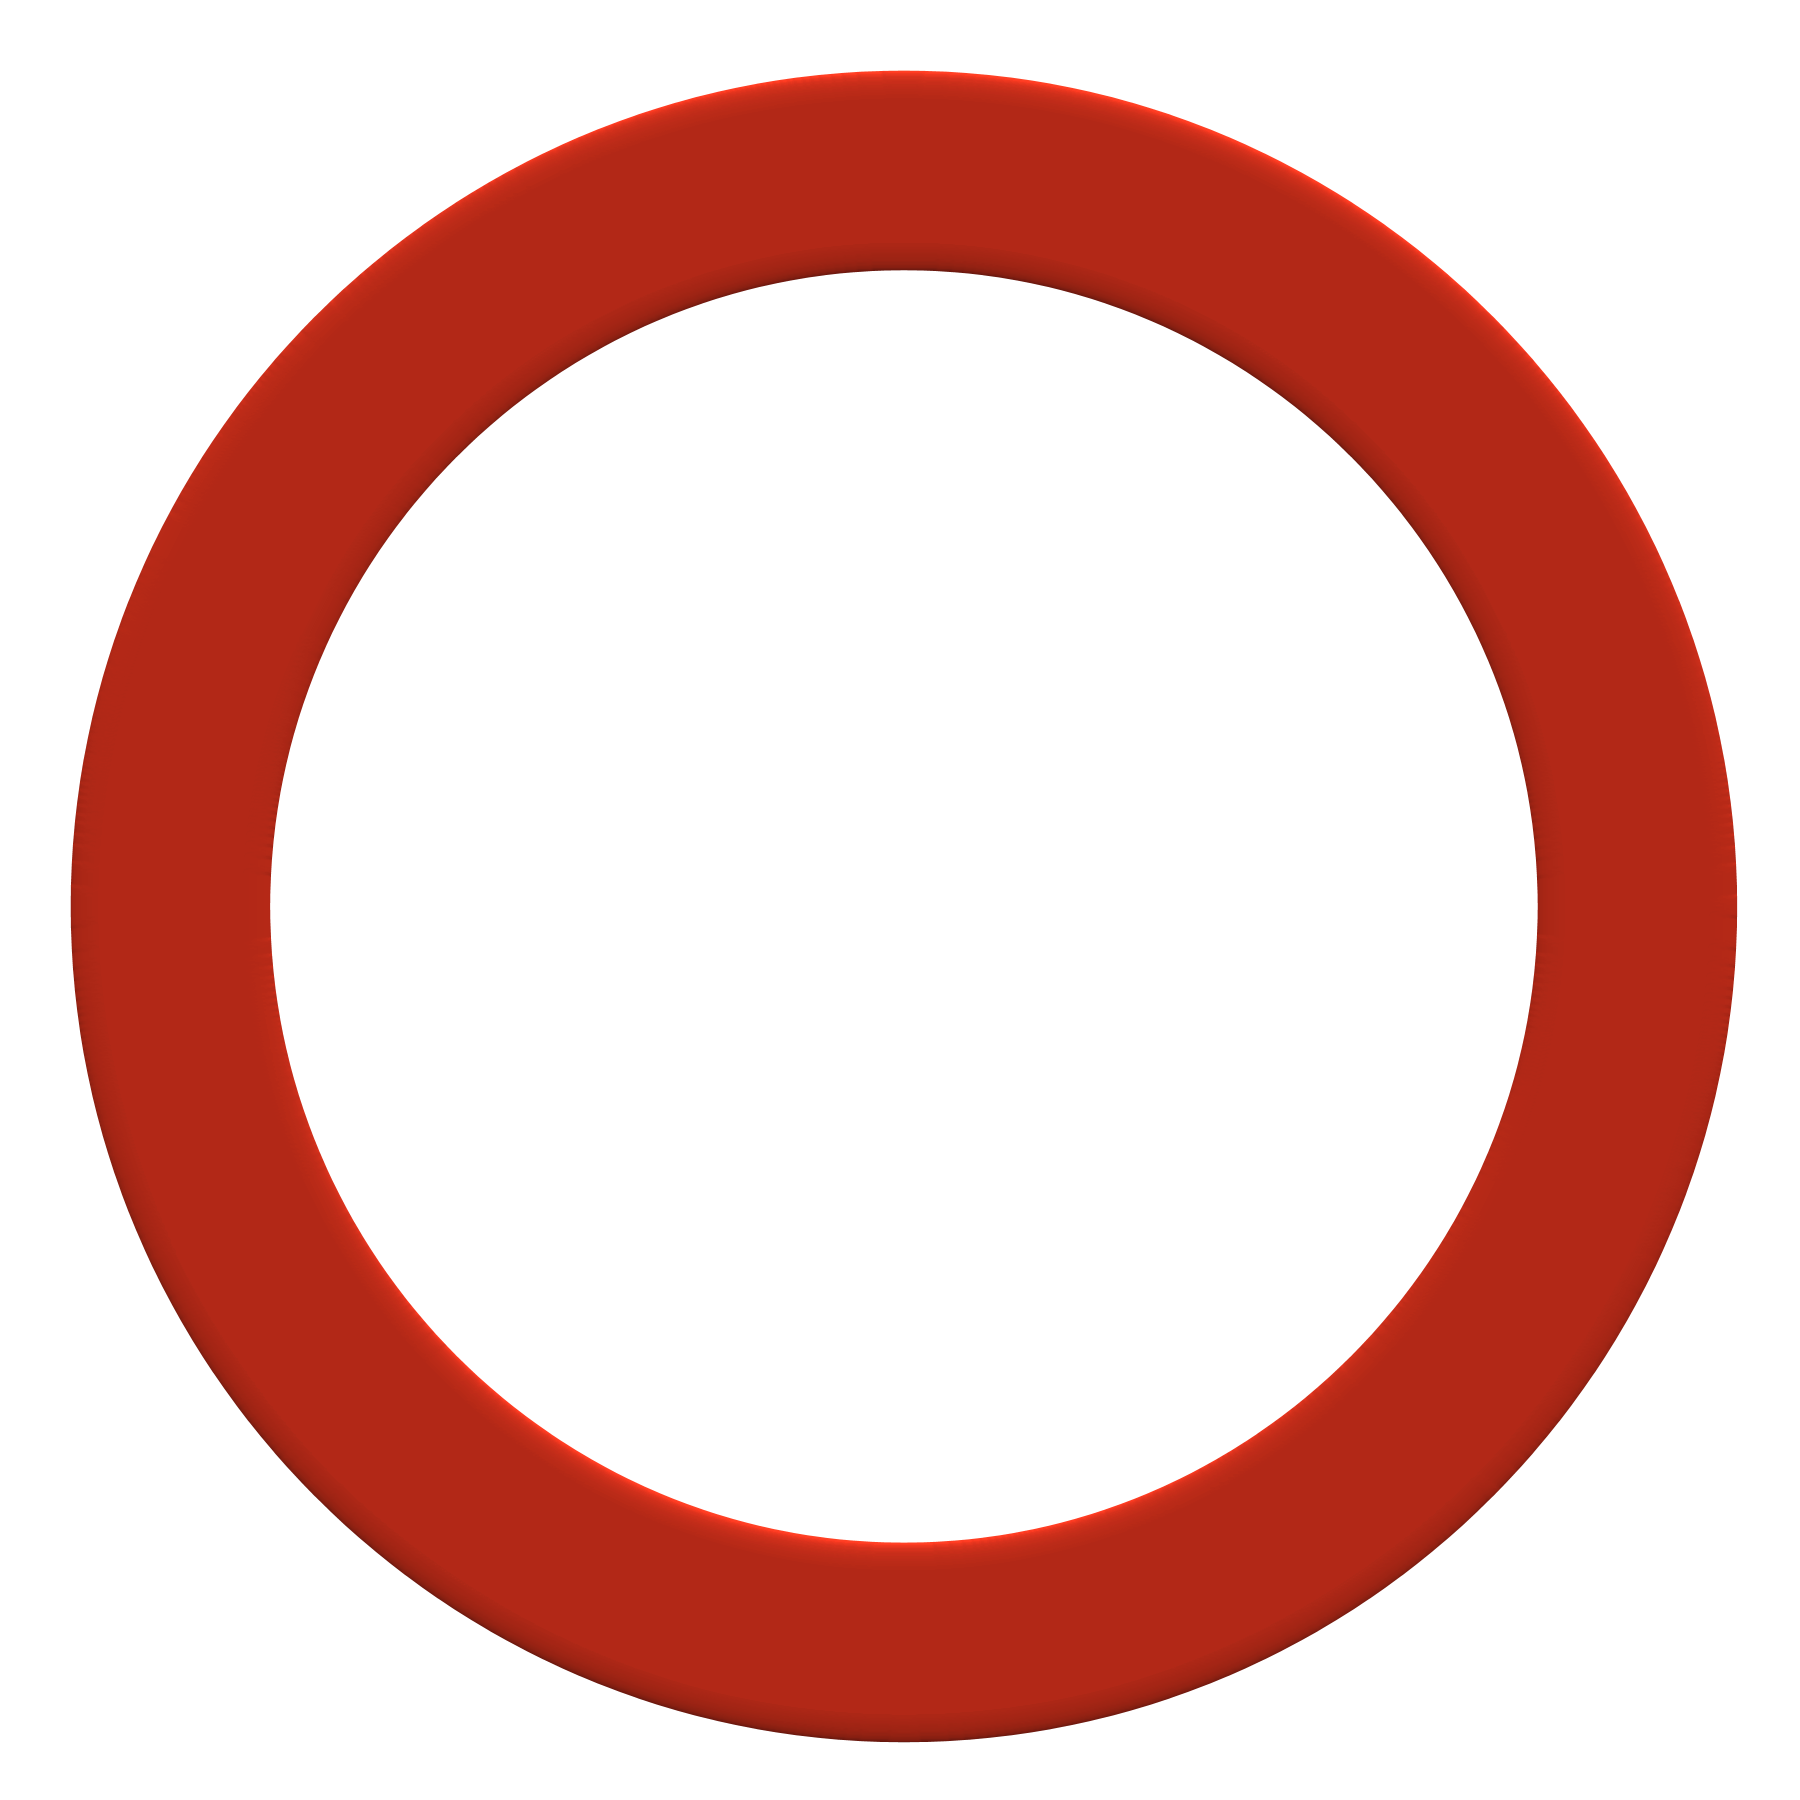 Circle Transparent Background PNG Image